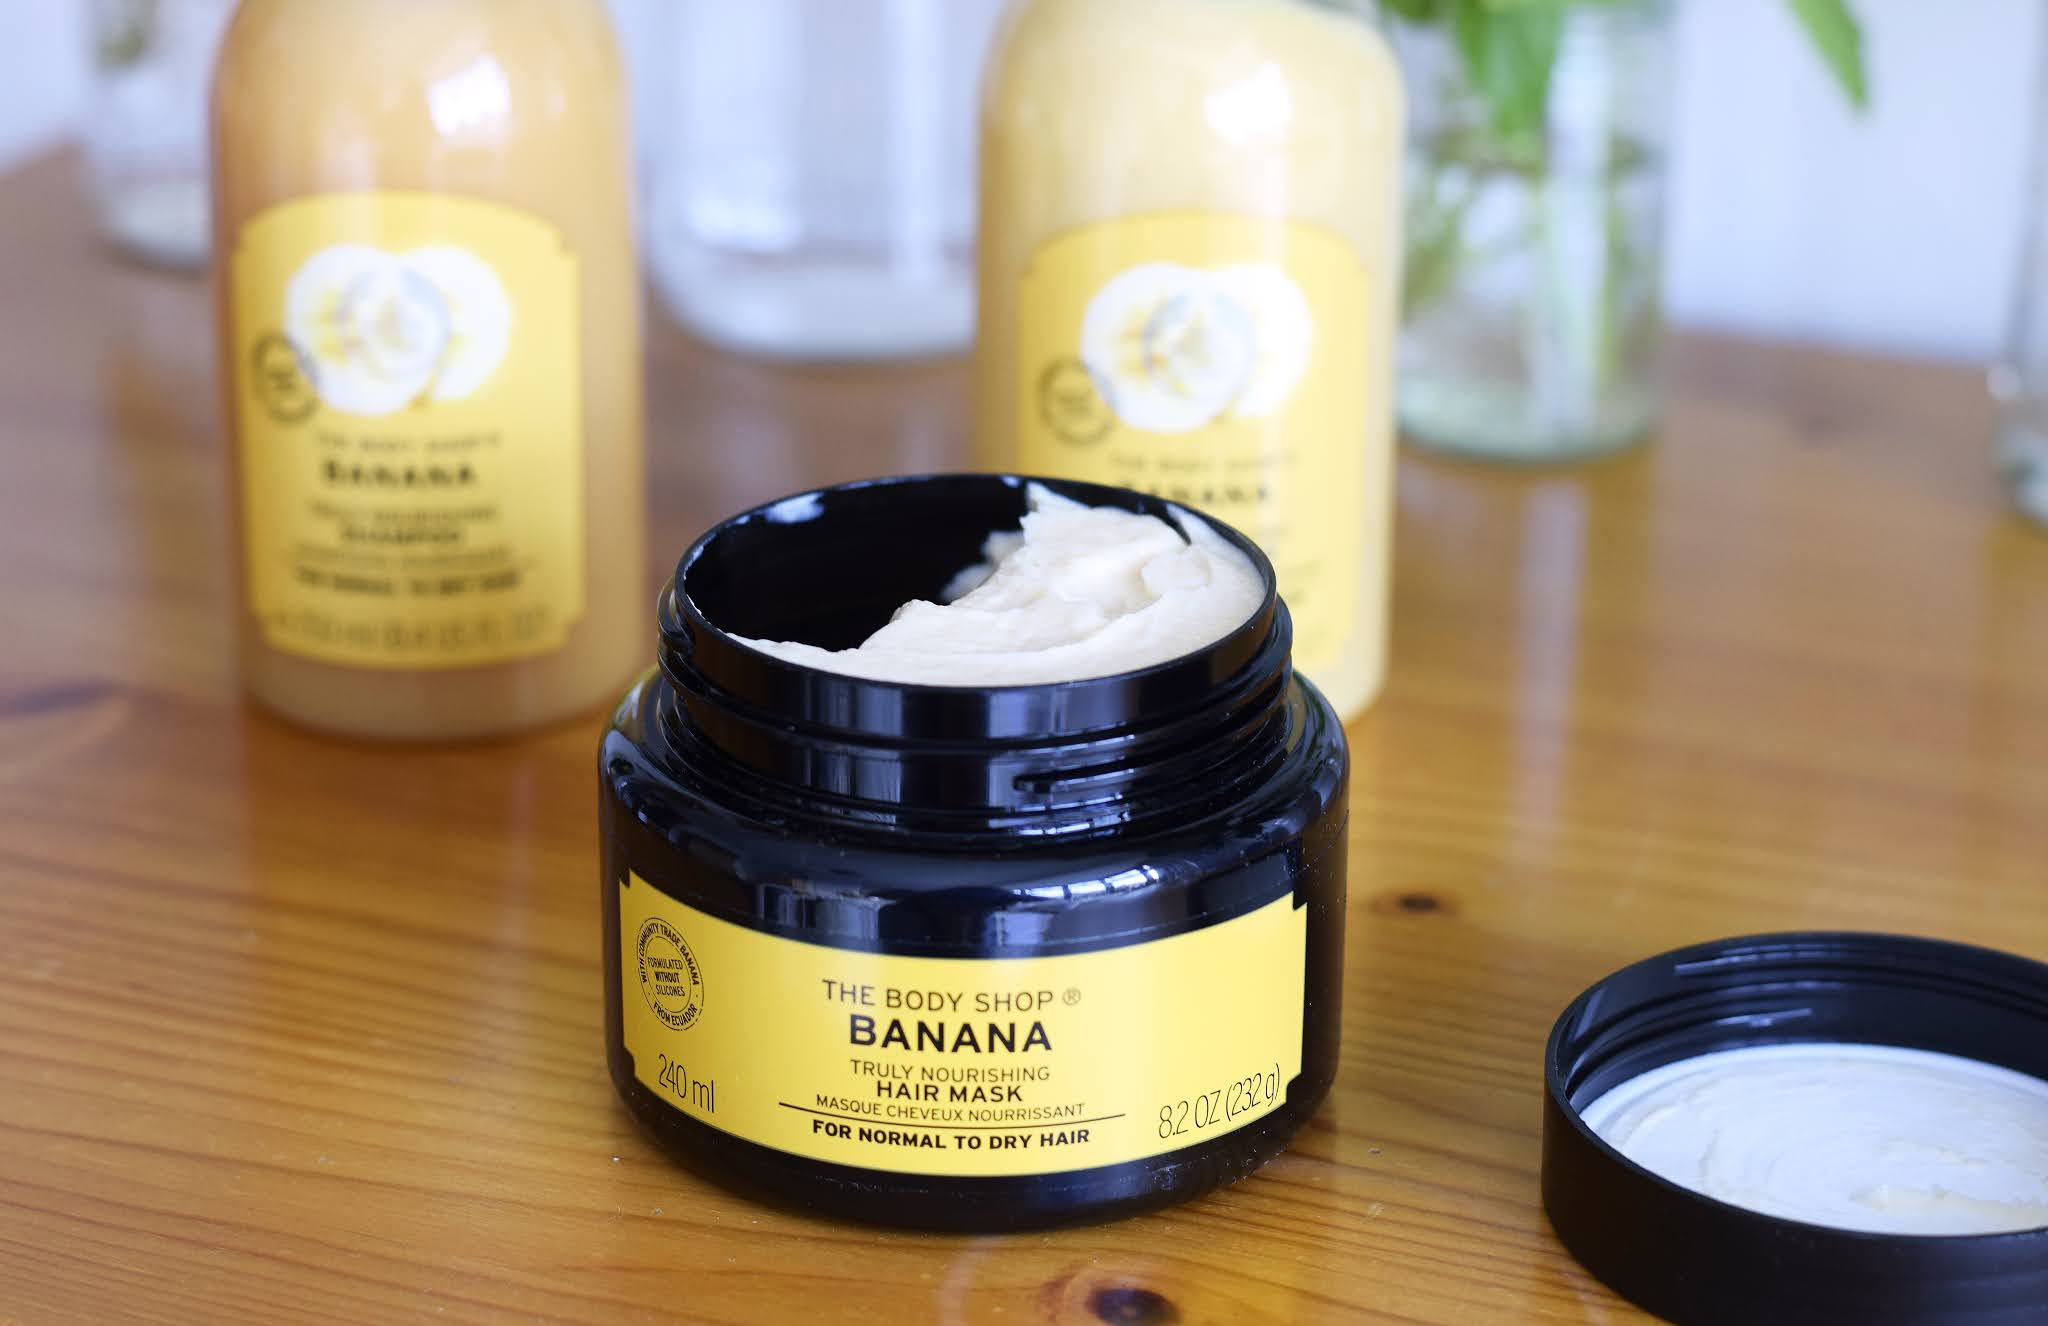 a pot of banana hair mask with the lid off. the creamy product can be seen inside.